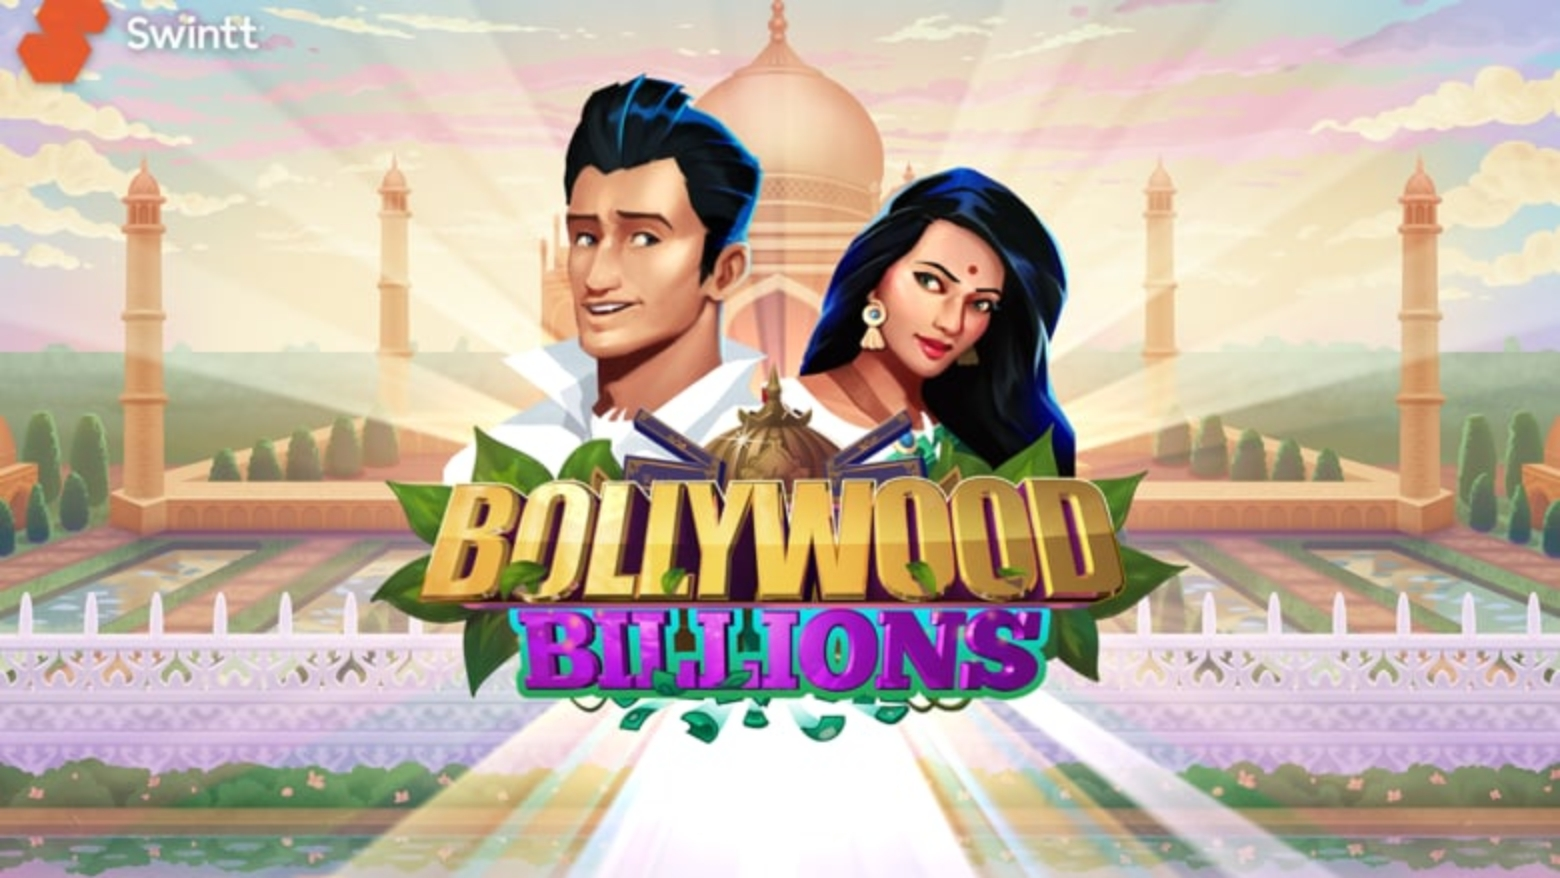 Win Money in Bollywood Billions Free Slot Game by Swintt